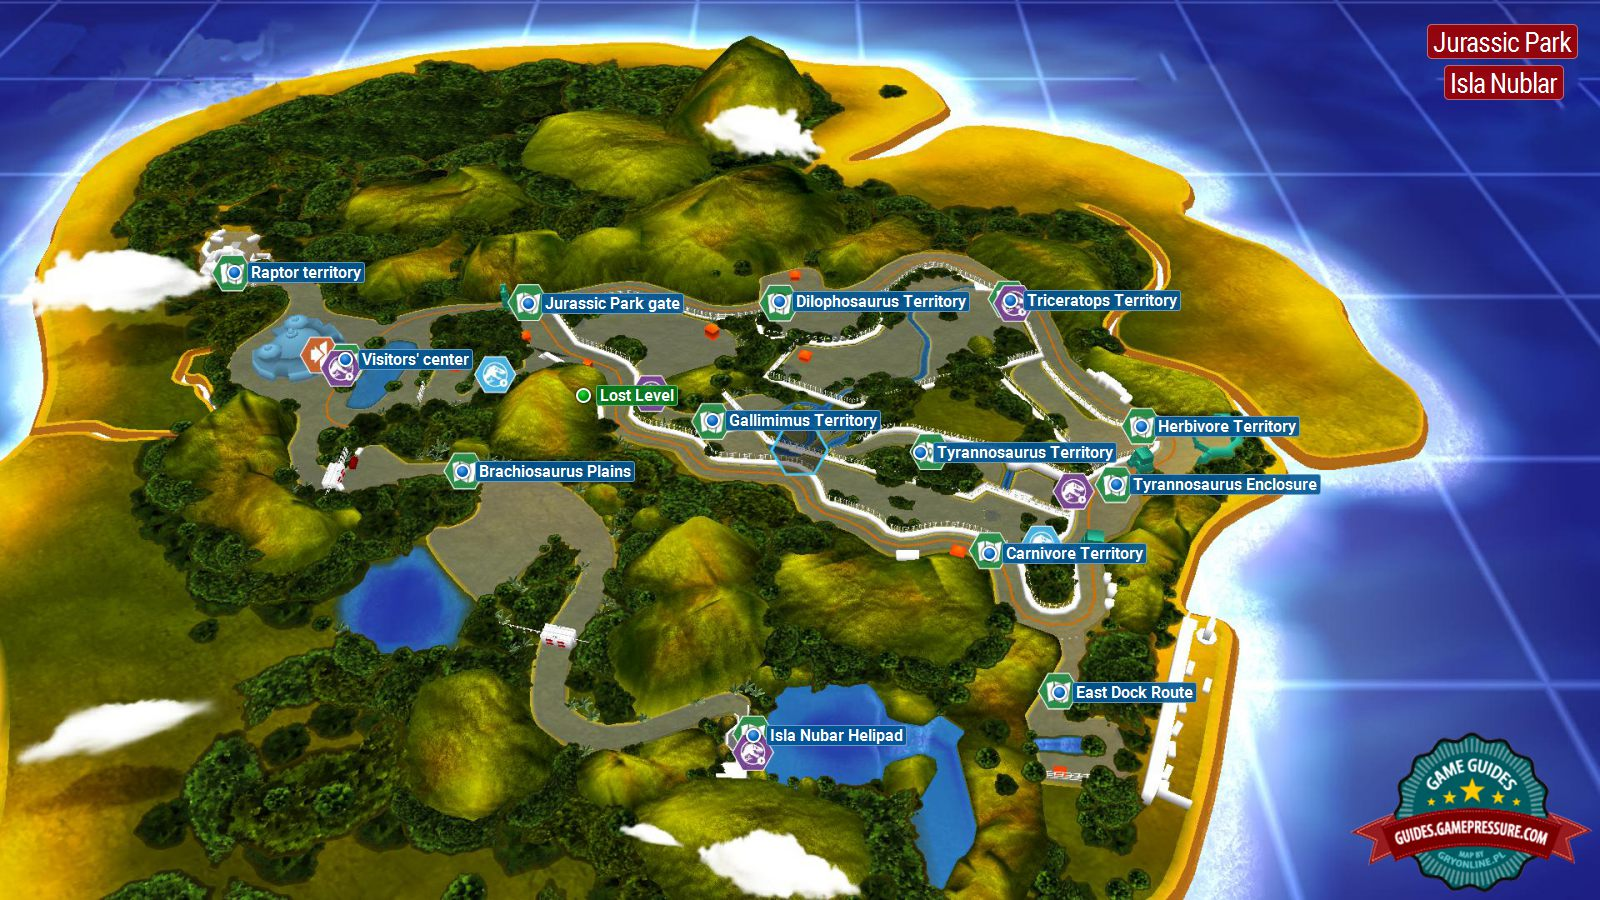 Introduction and map jurassic park secrets in free roam lego lego jurassic world jurassic park gumiabroncs Gallery